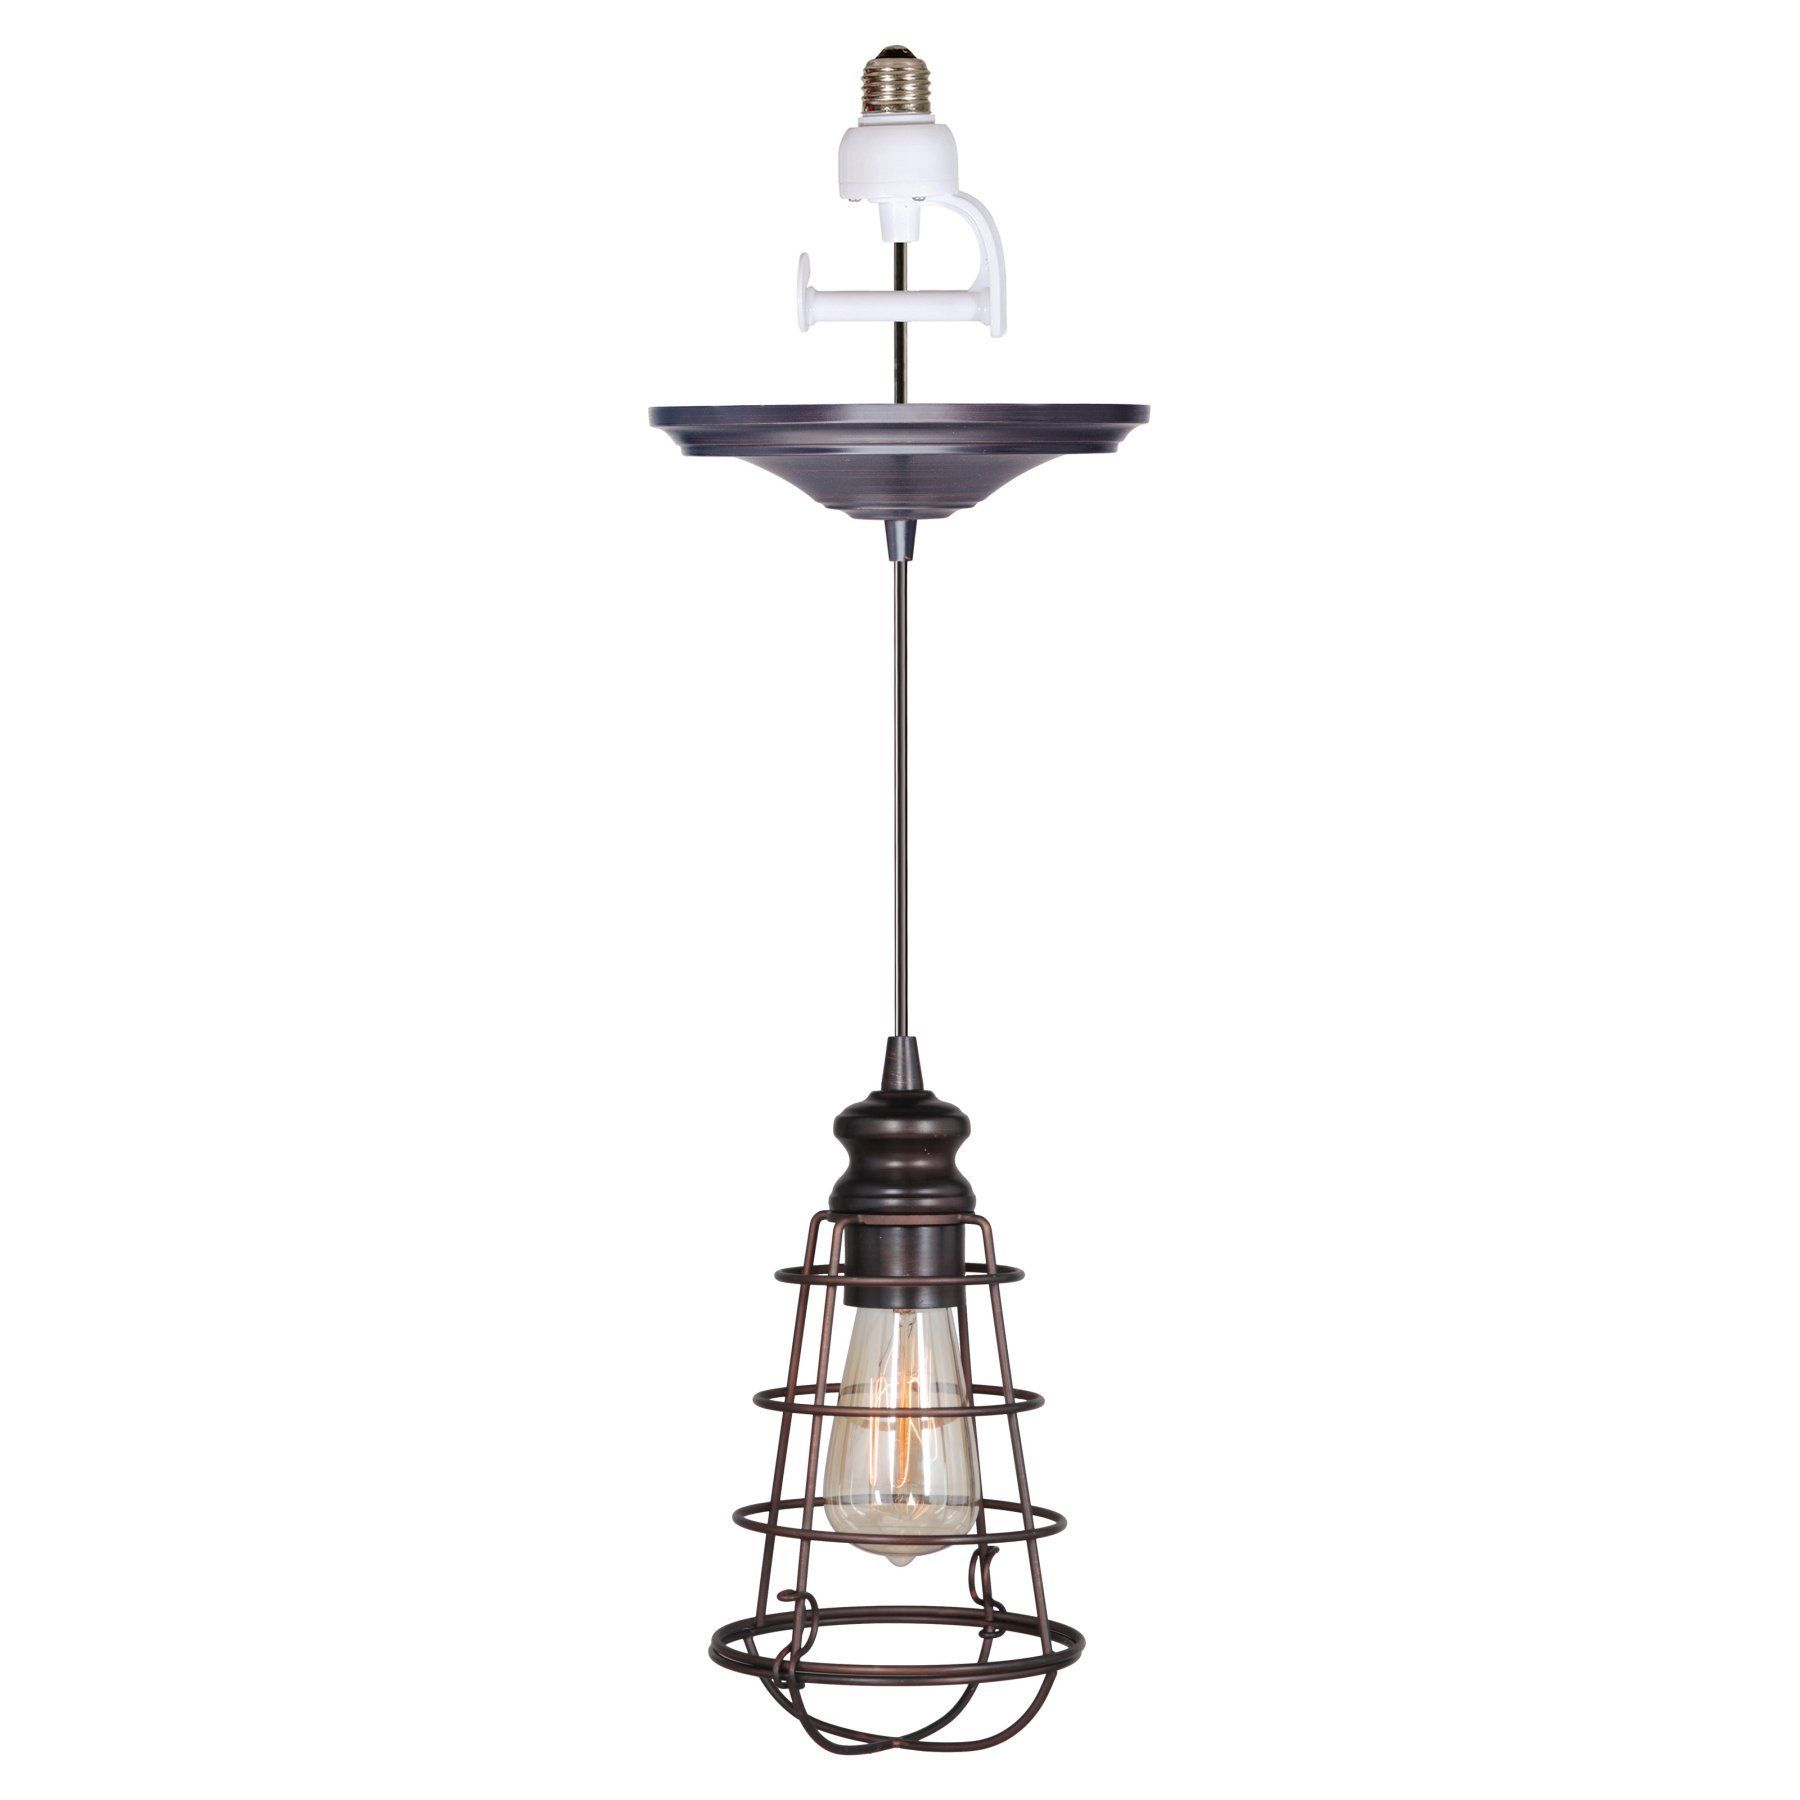 Worth home products instant screw in pendant light with wire cage